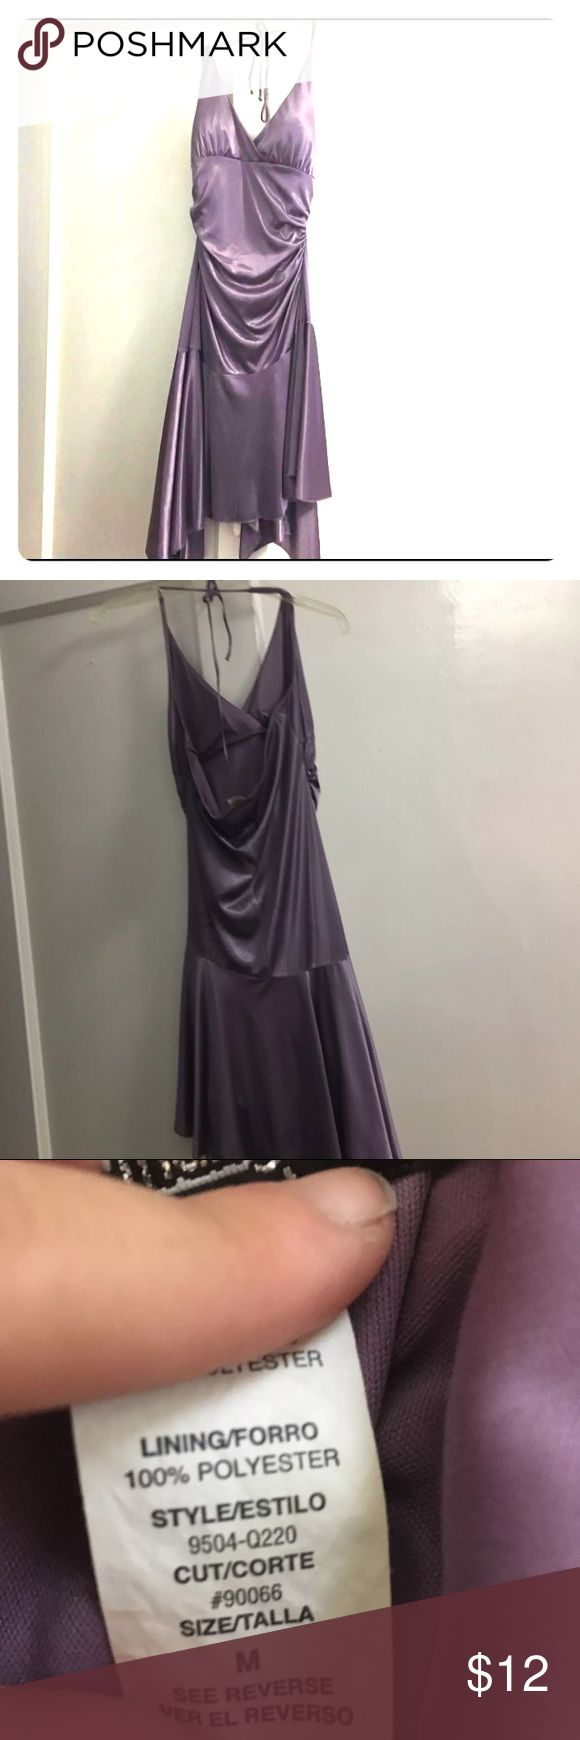 Purple halter dress This purple neck tie halter dress has an asymmetrical bottom and is perfect for a night out! Perfect for petite women because it's not too long, it goes a little past my knees and I'm 5'0 so it'll be a little shorter on a taller person. Only worn once! Dresses Asymmetrical